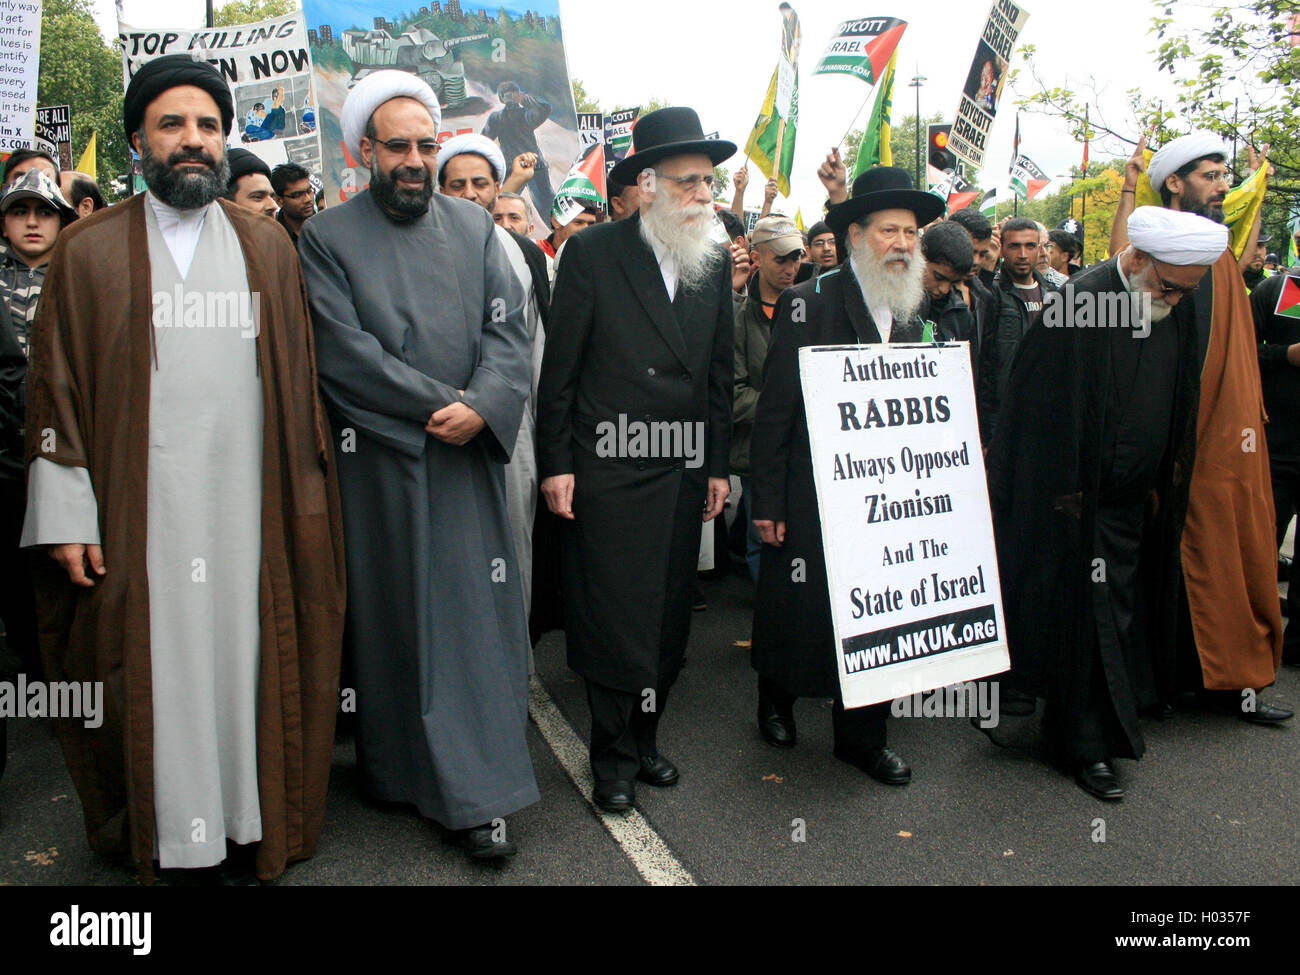 Iranian Shia Muslim clerics together with orthodox Jews marching during Al-Quds Day, London, UK. - Stock Image